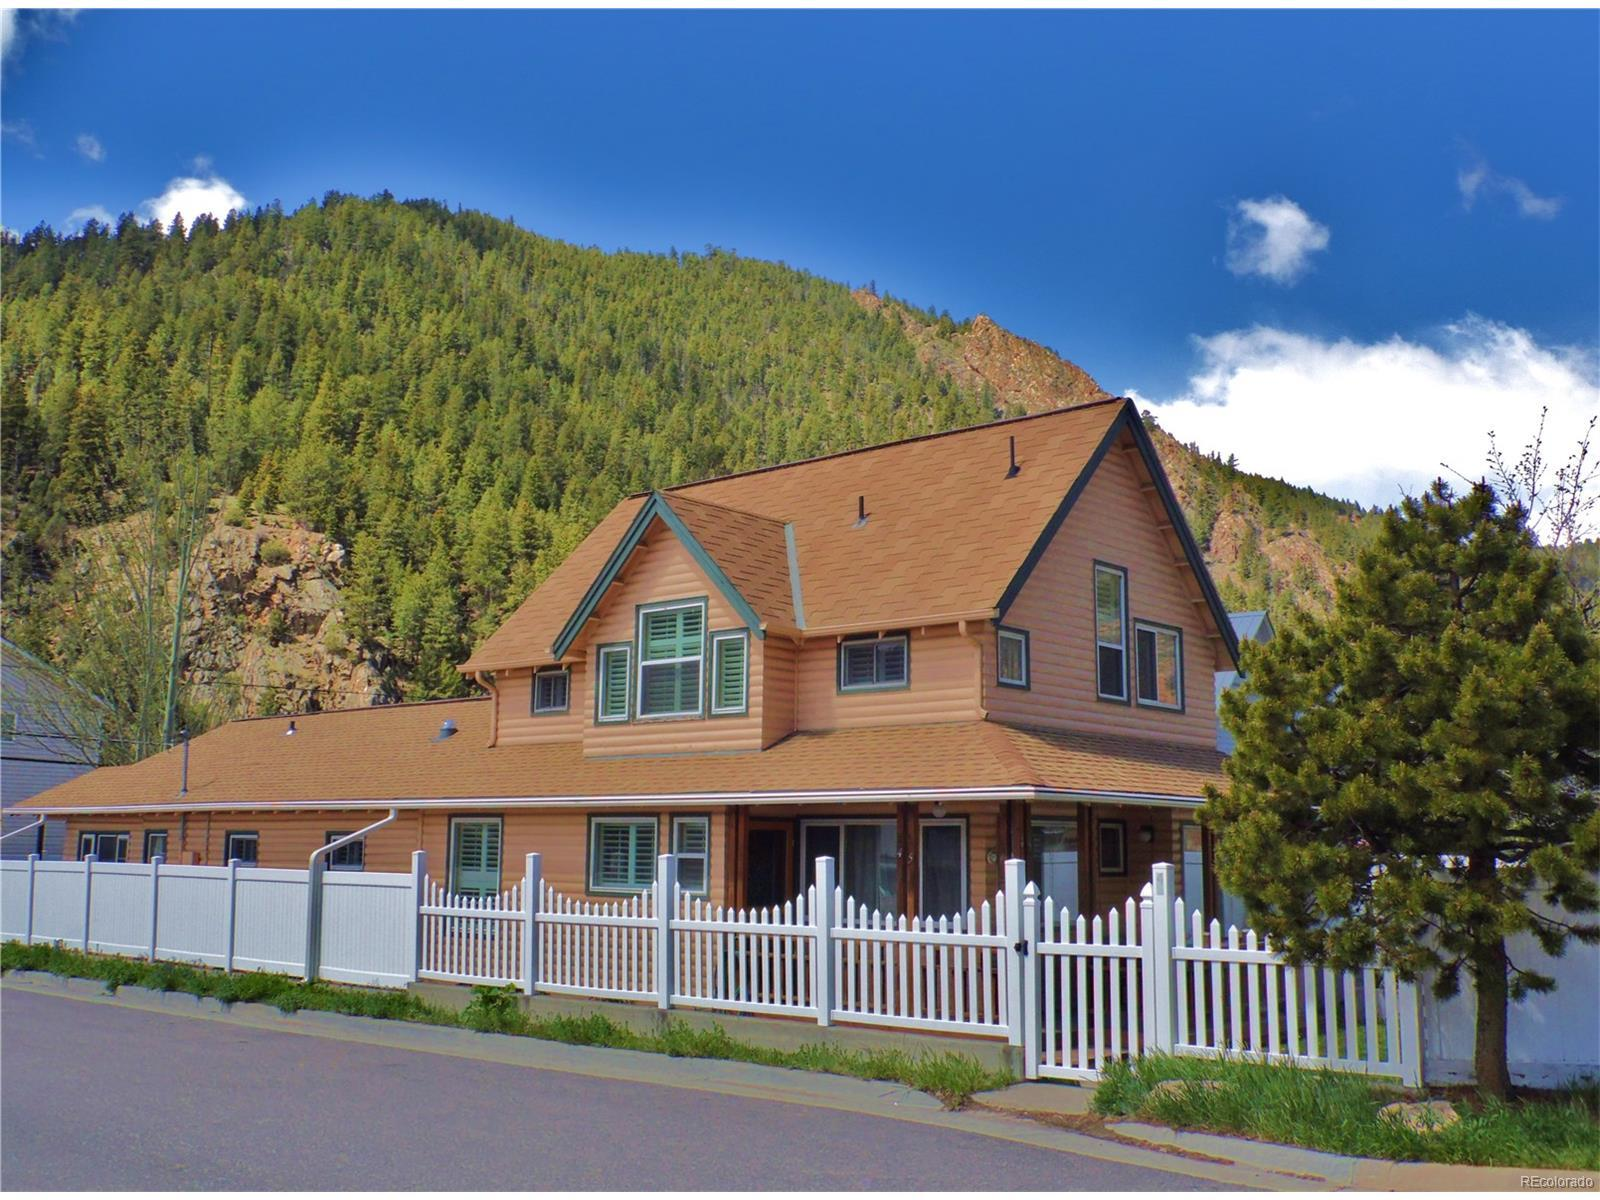 Idaho Springs CO Real Estate and Mortgage Loans